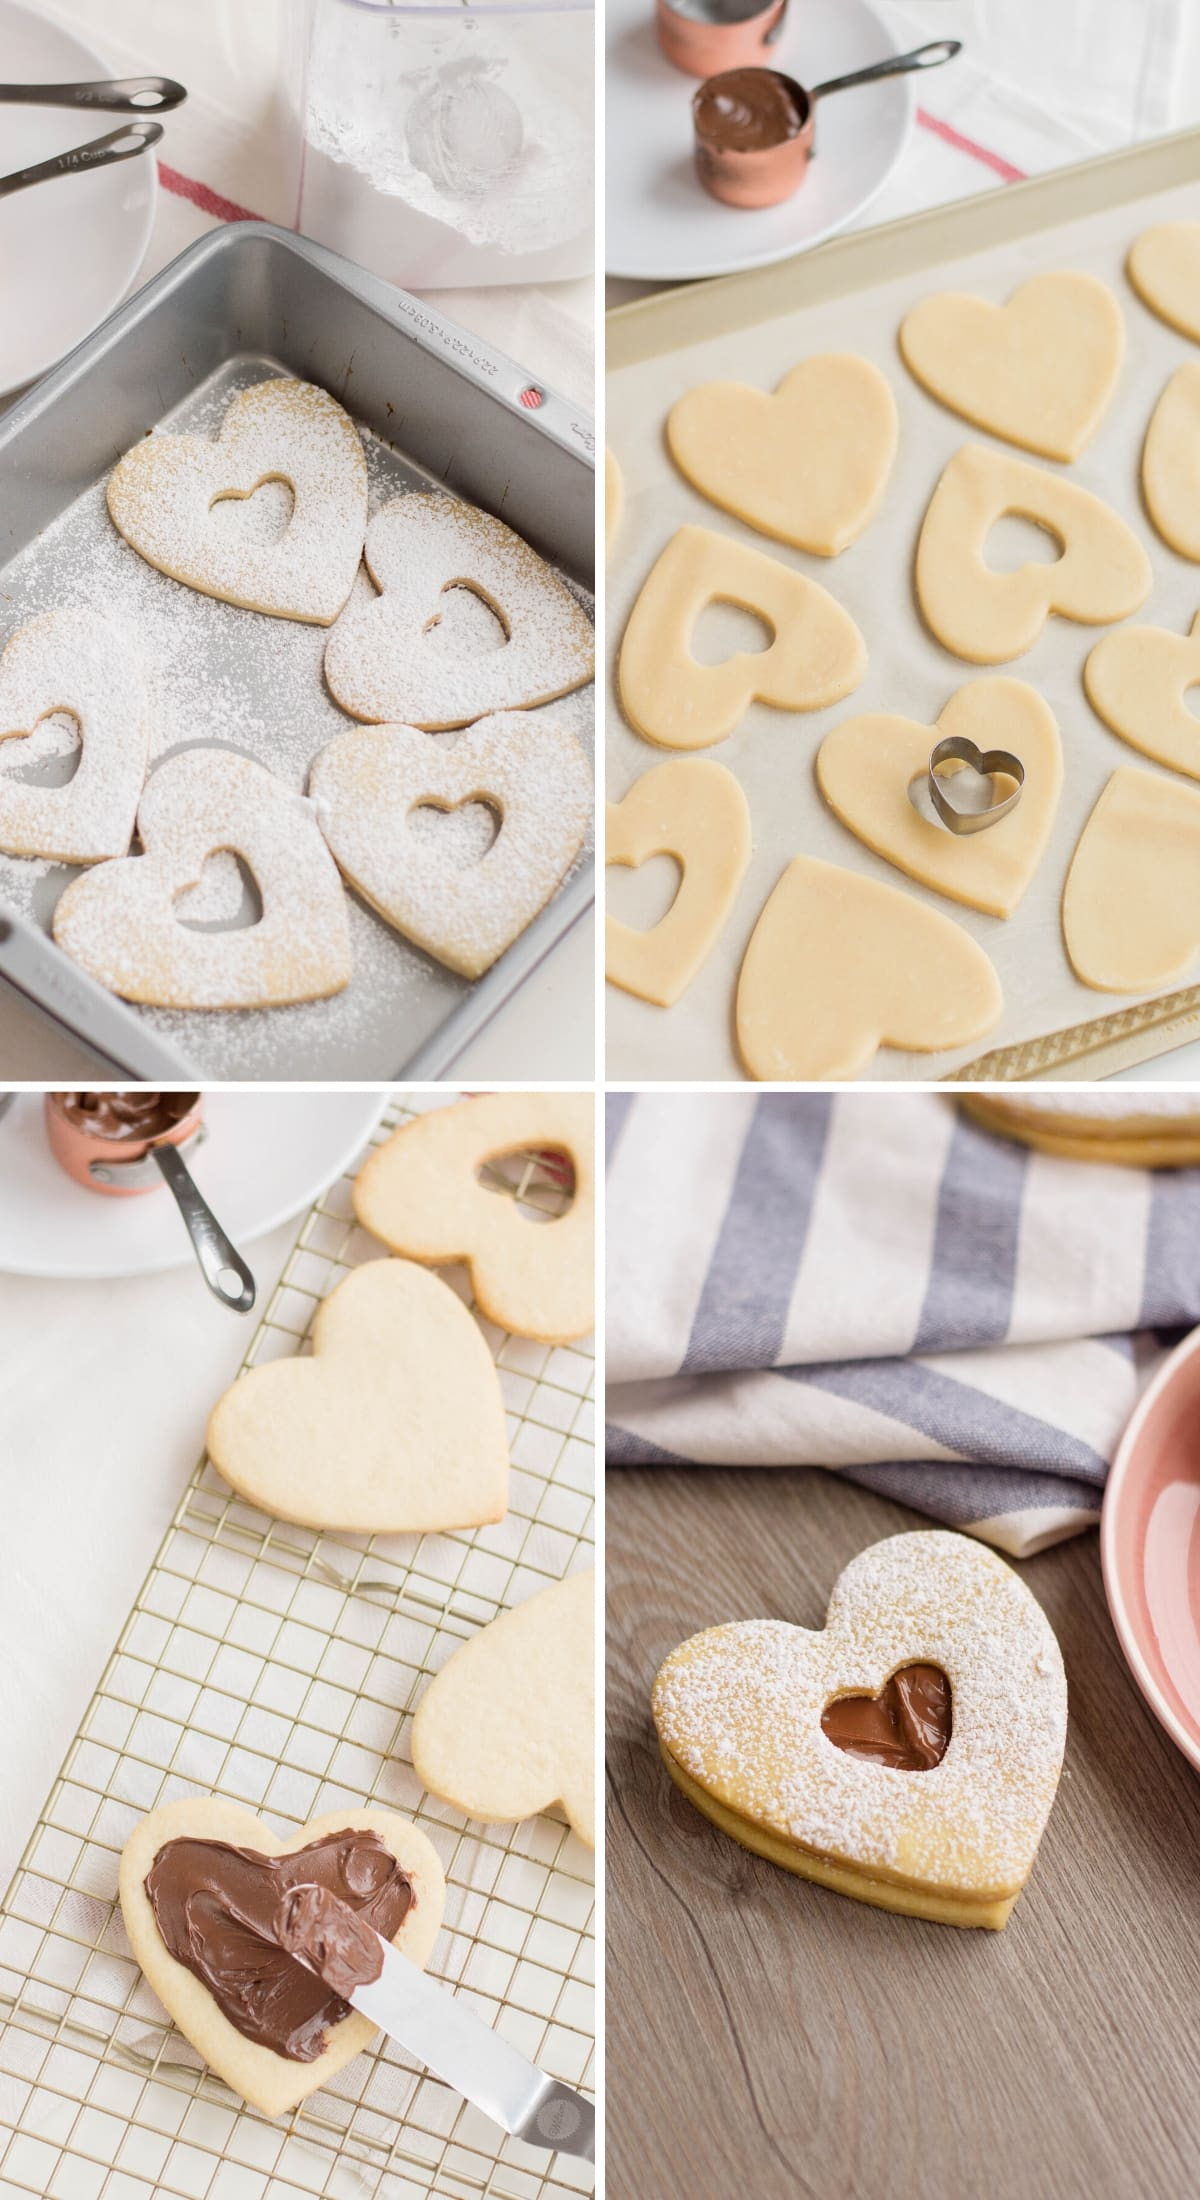 making nutella filled cookies step by step